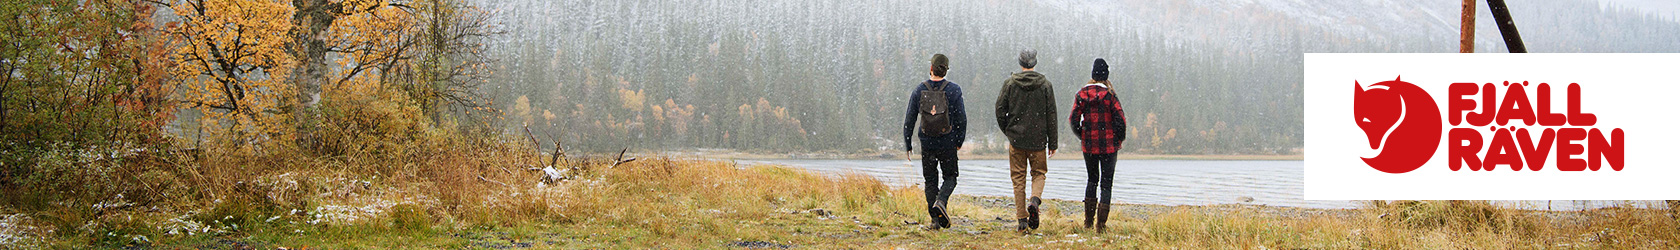 Three people are walking towards a lake, surrounded by mountains, wearing Fjallraven gear.